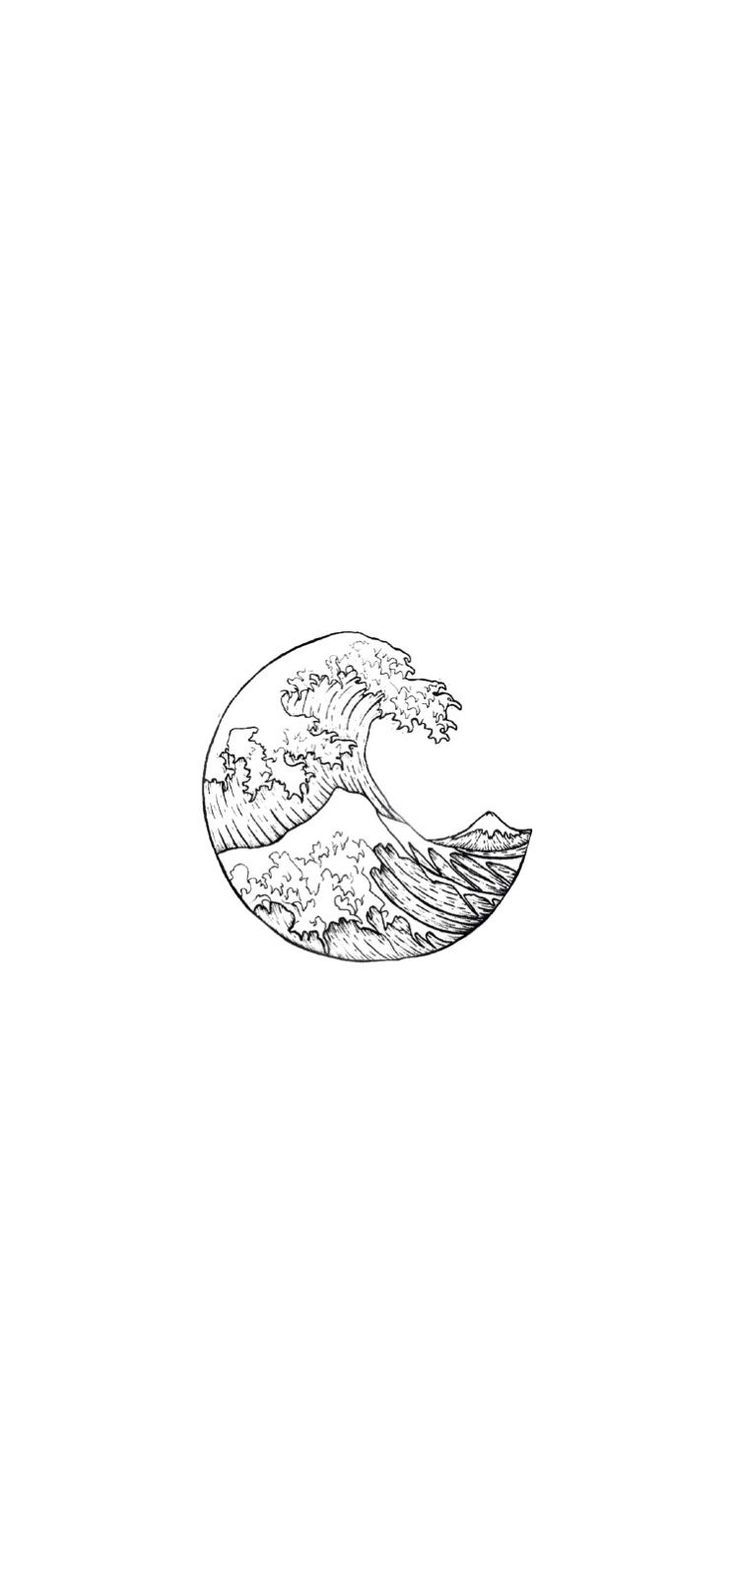 Tons of awesome aesthetic laptop white wallpapers to download for free. yin + yang | Waves wallpaper, Minimalist wallpaper